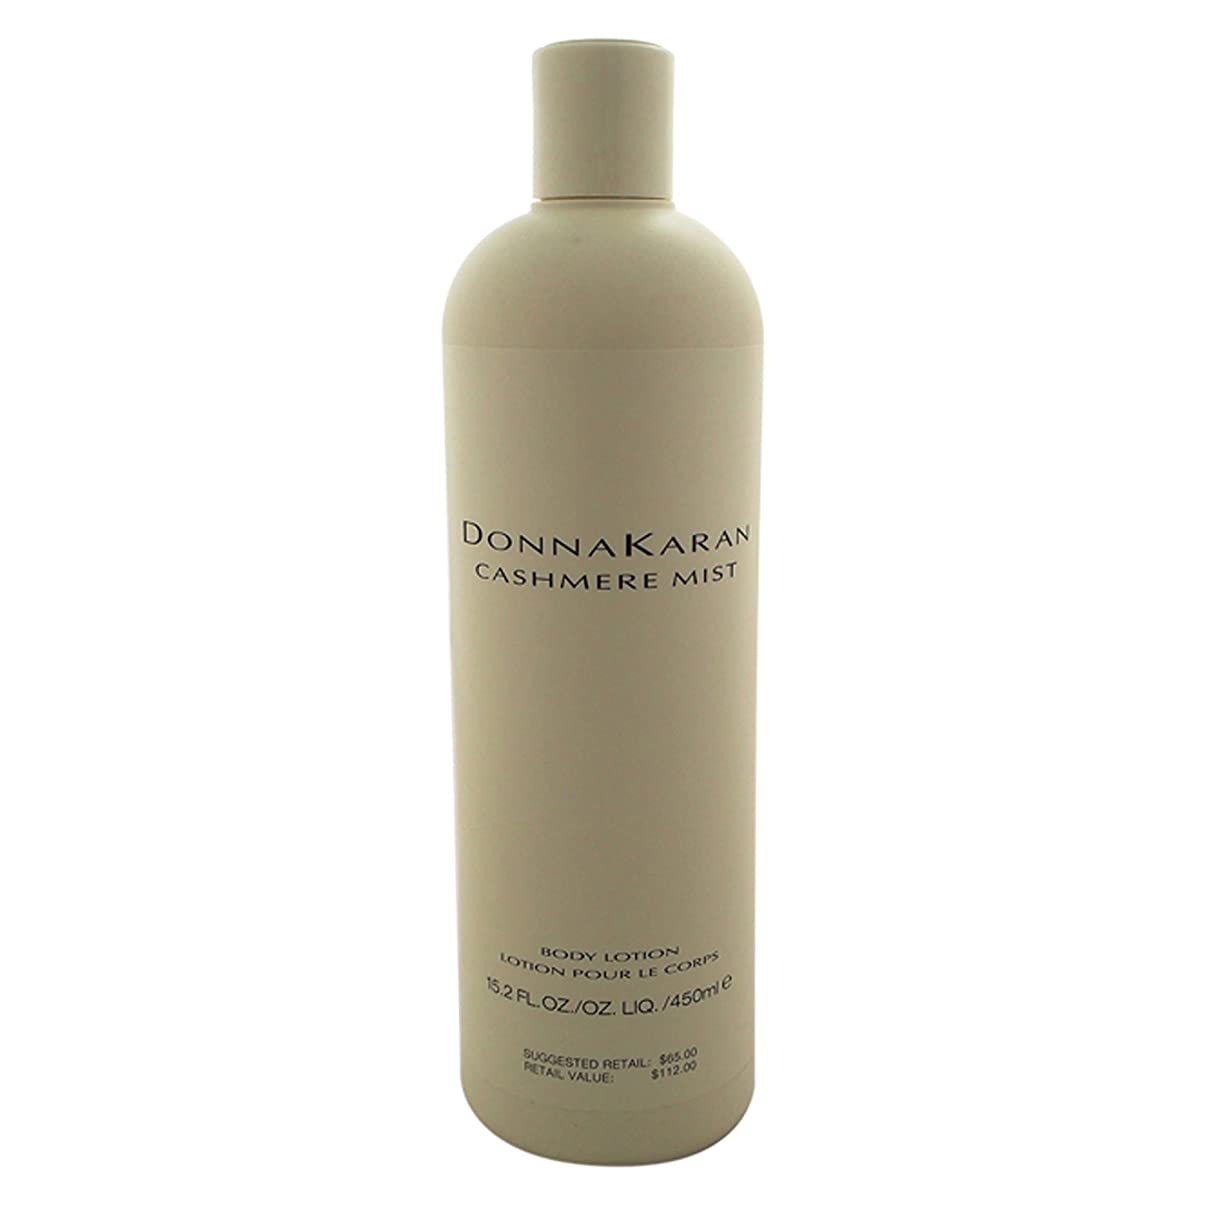 引き潮わなファンブルCASHMERE MIST by Donna Karan Body Lotion 15.2 oz